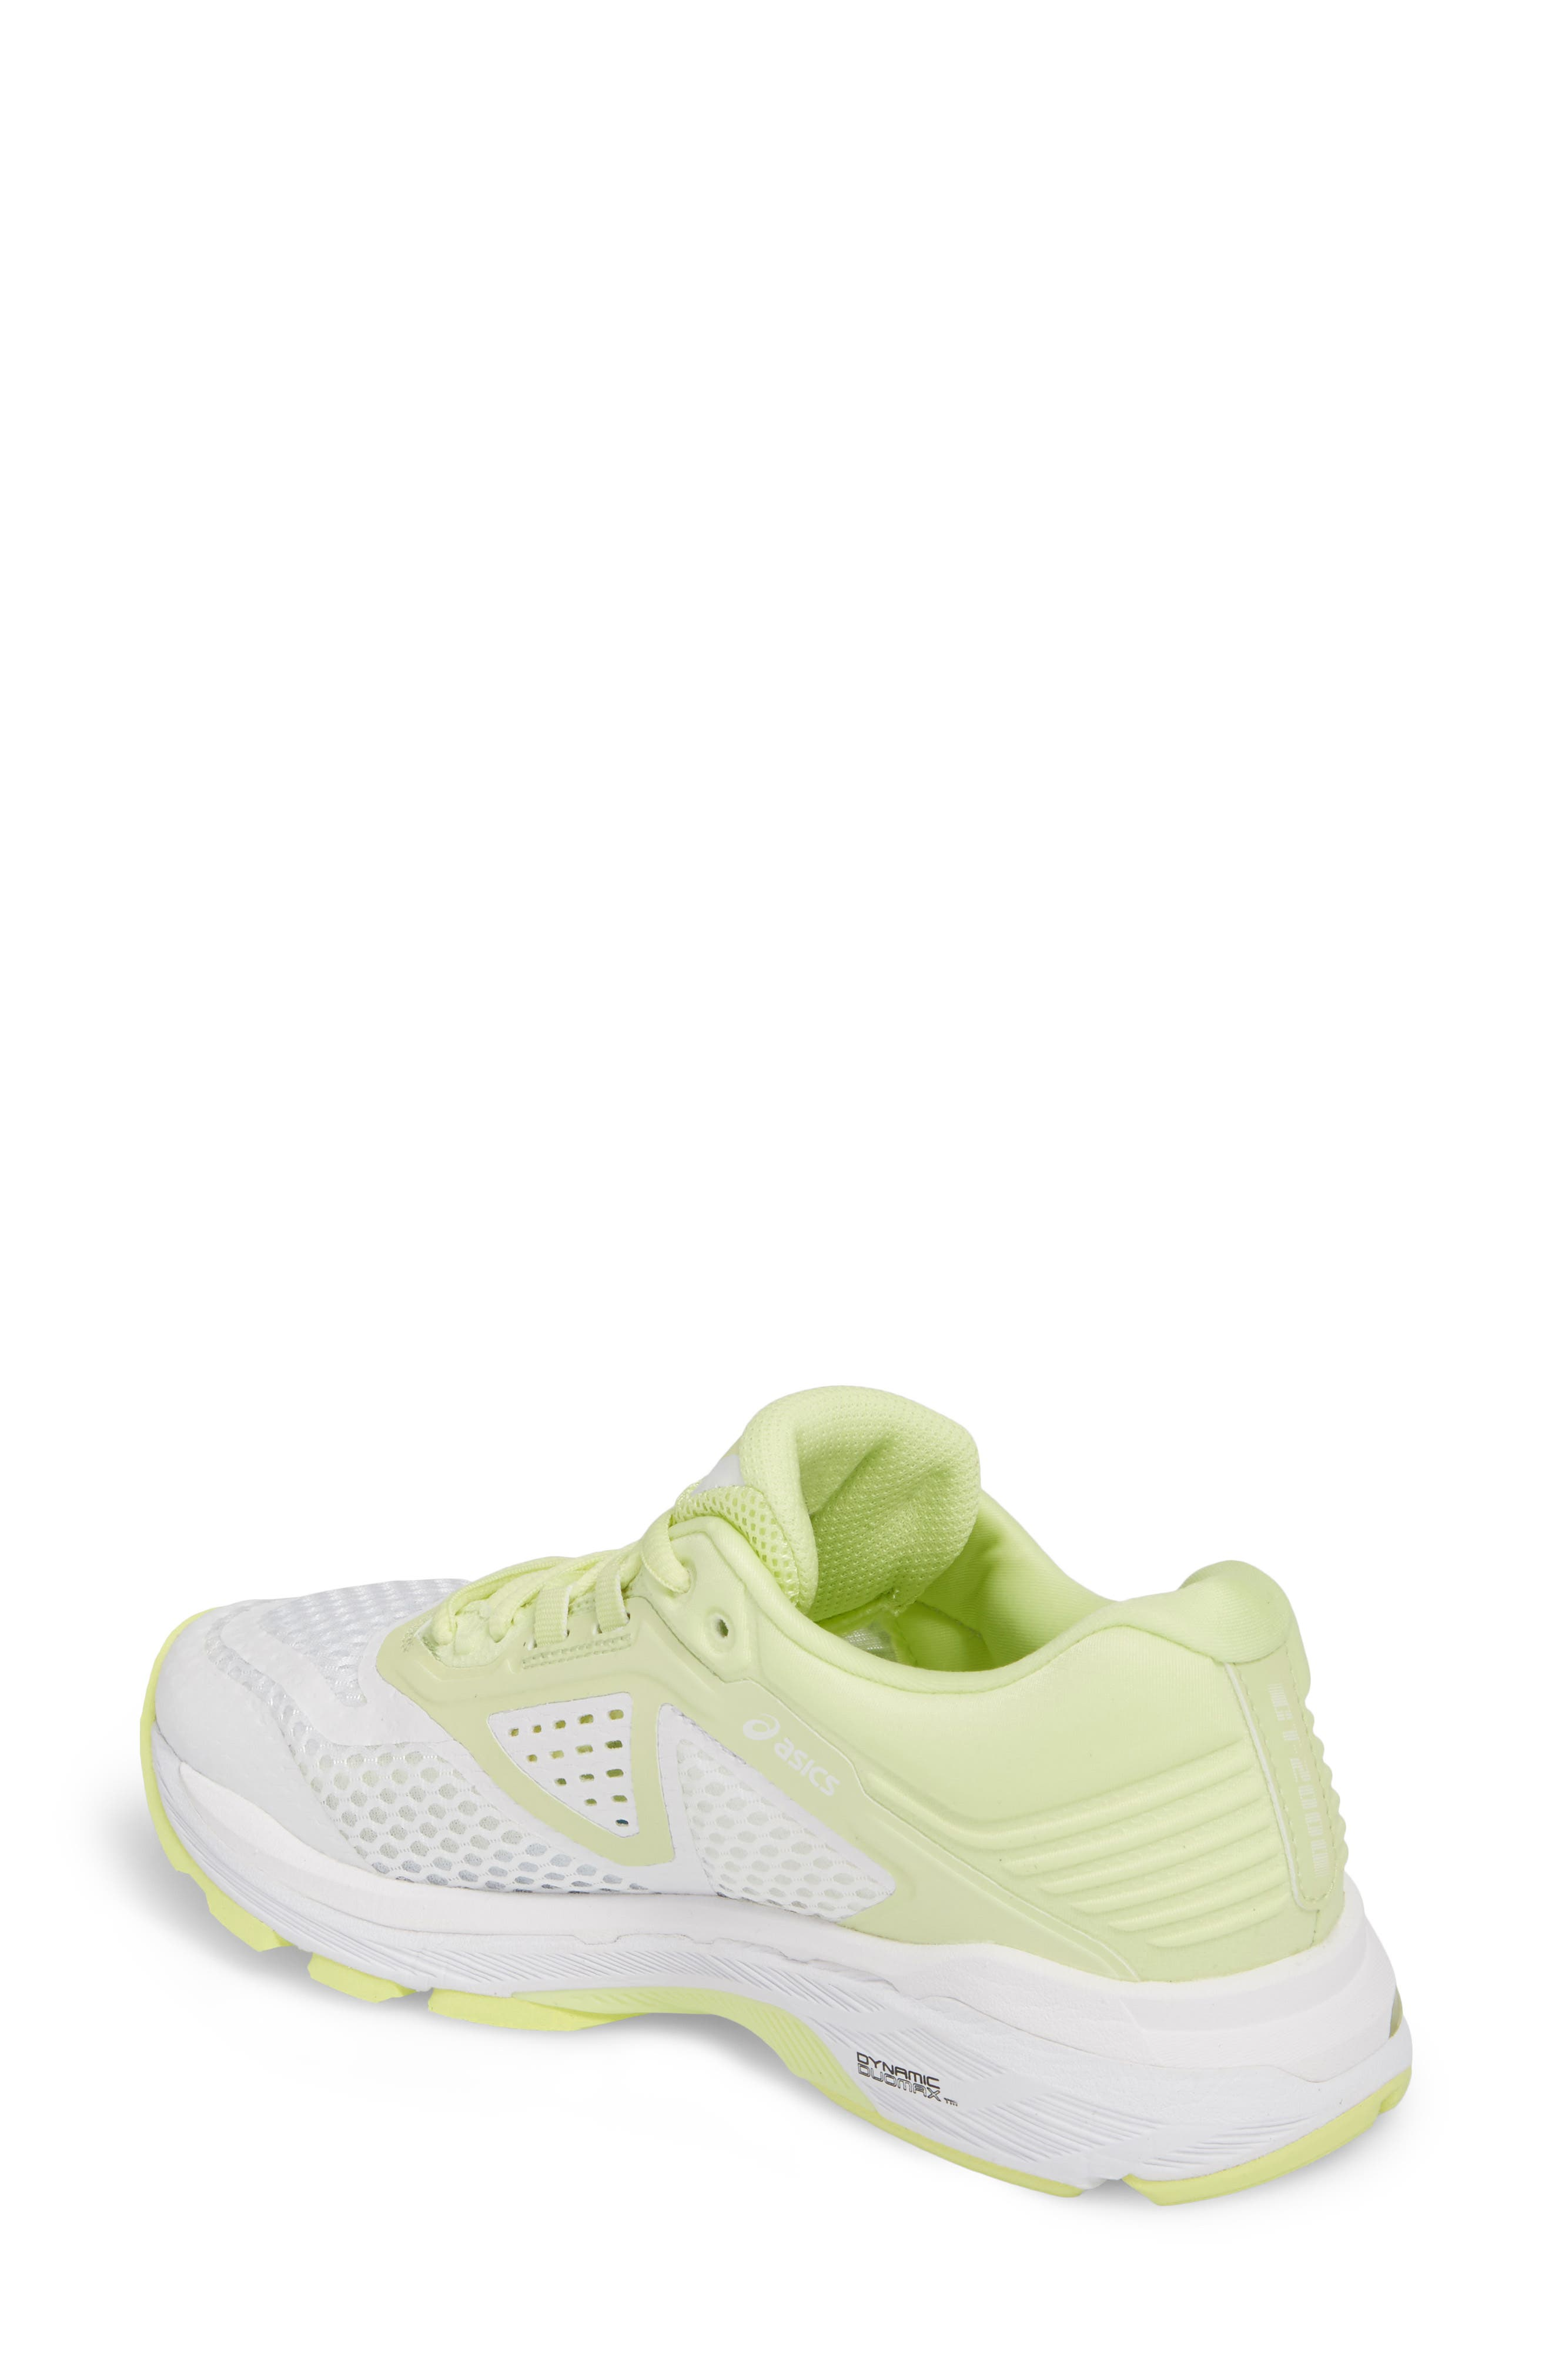 GT-2000 6 Running Shoe,                             Alternate thumbnail 2, color,                             700